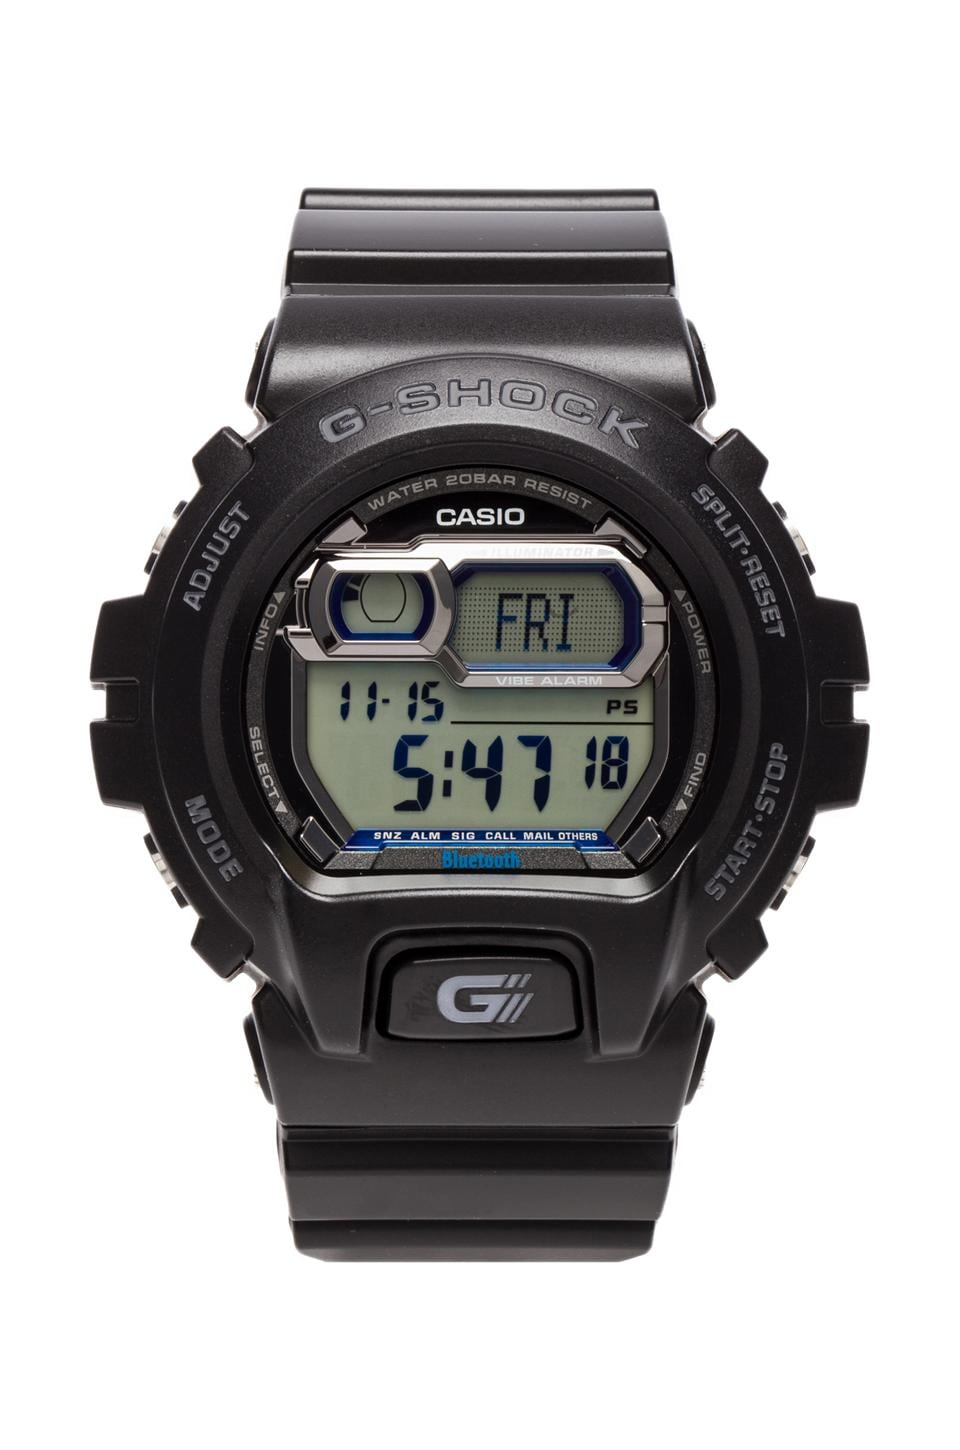 G-Shock GBX-6900 Bluetooth Edition in Black